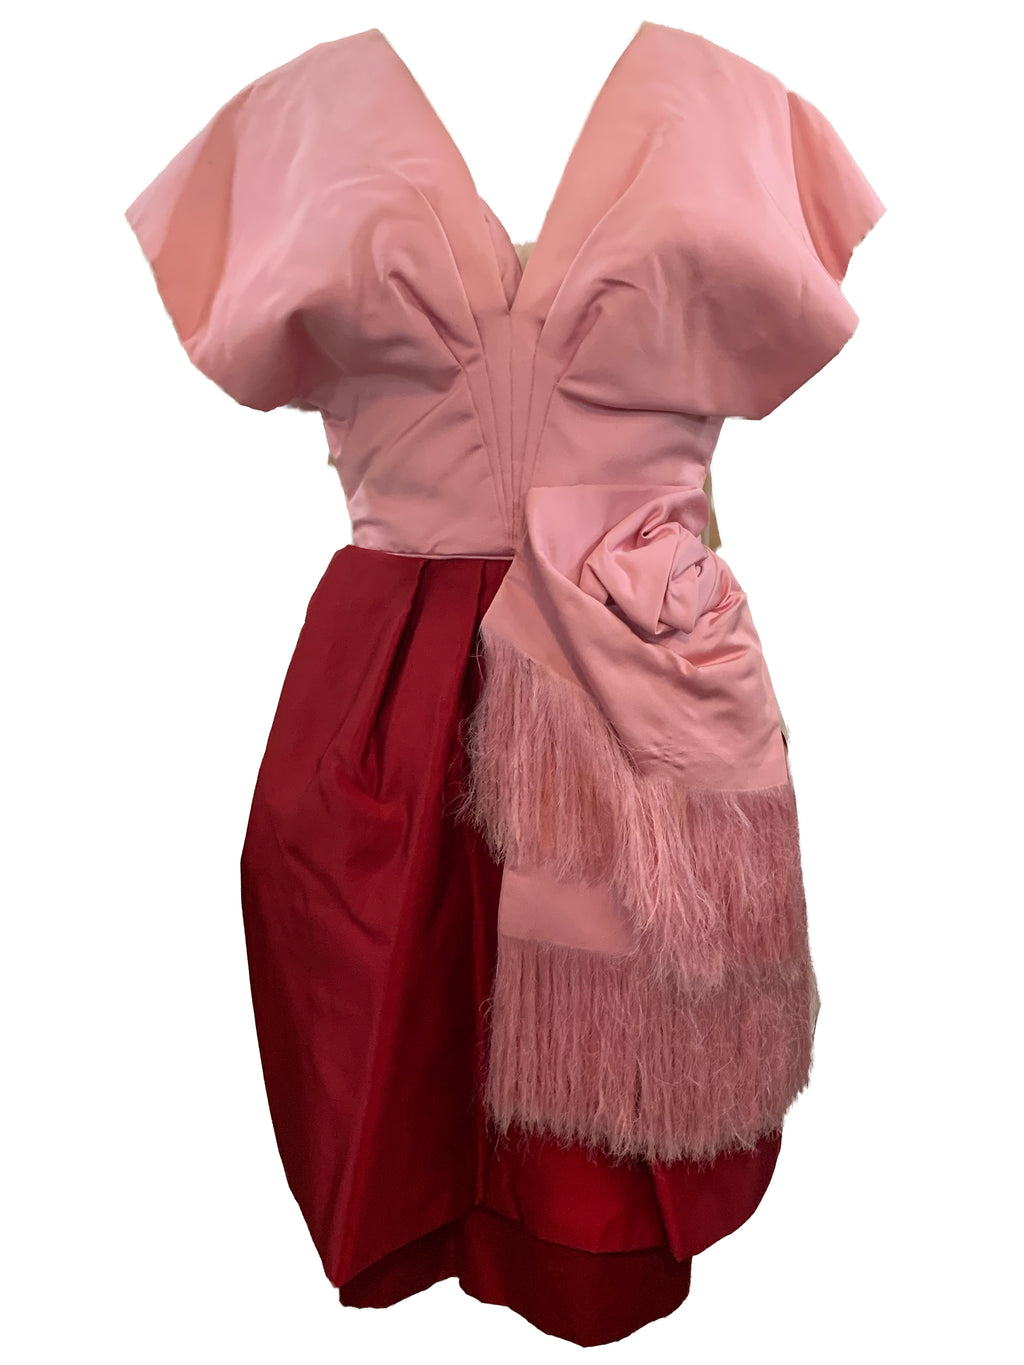 d'Crenza of Beverly Hills 50s Red and Pink Silk Cocktail Ensemble DRESS 1 of 6